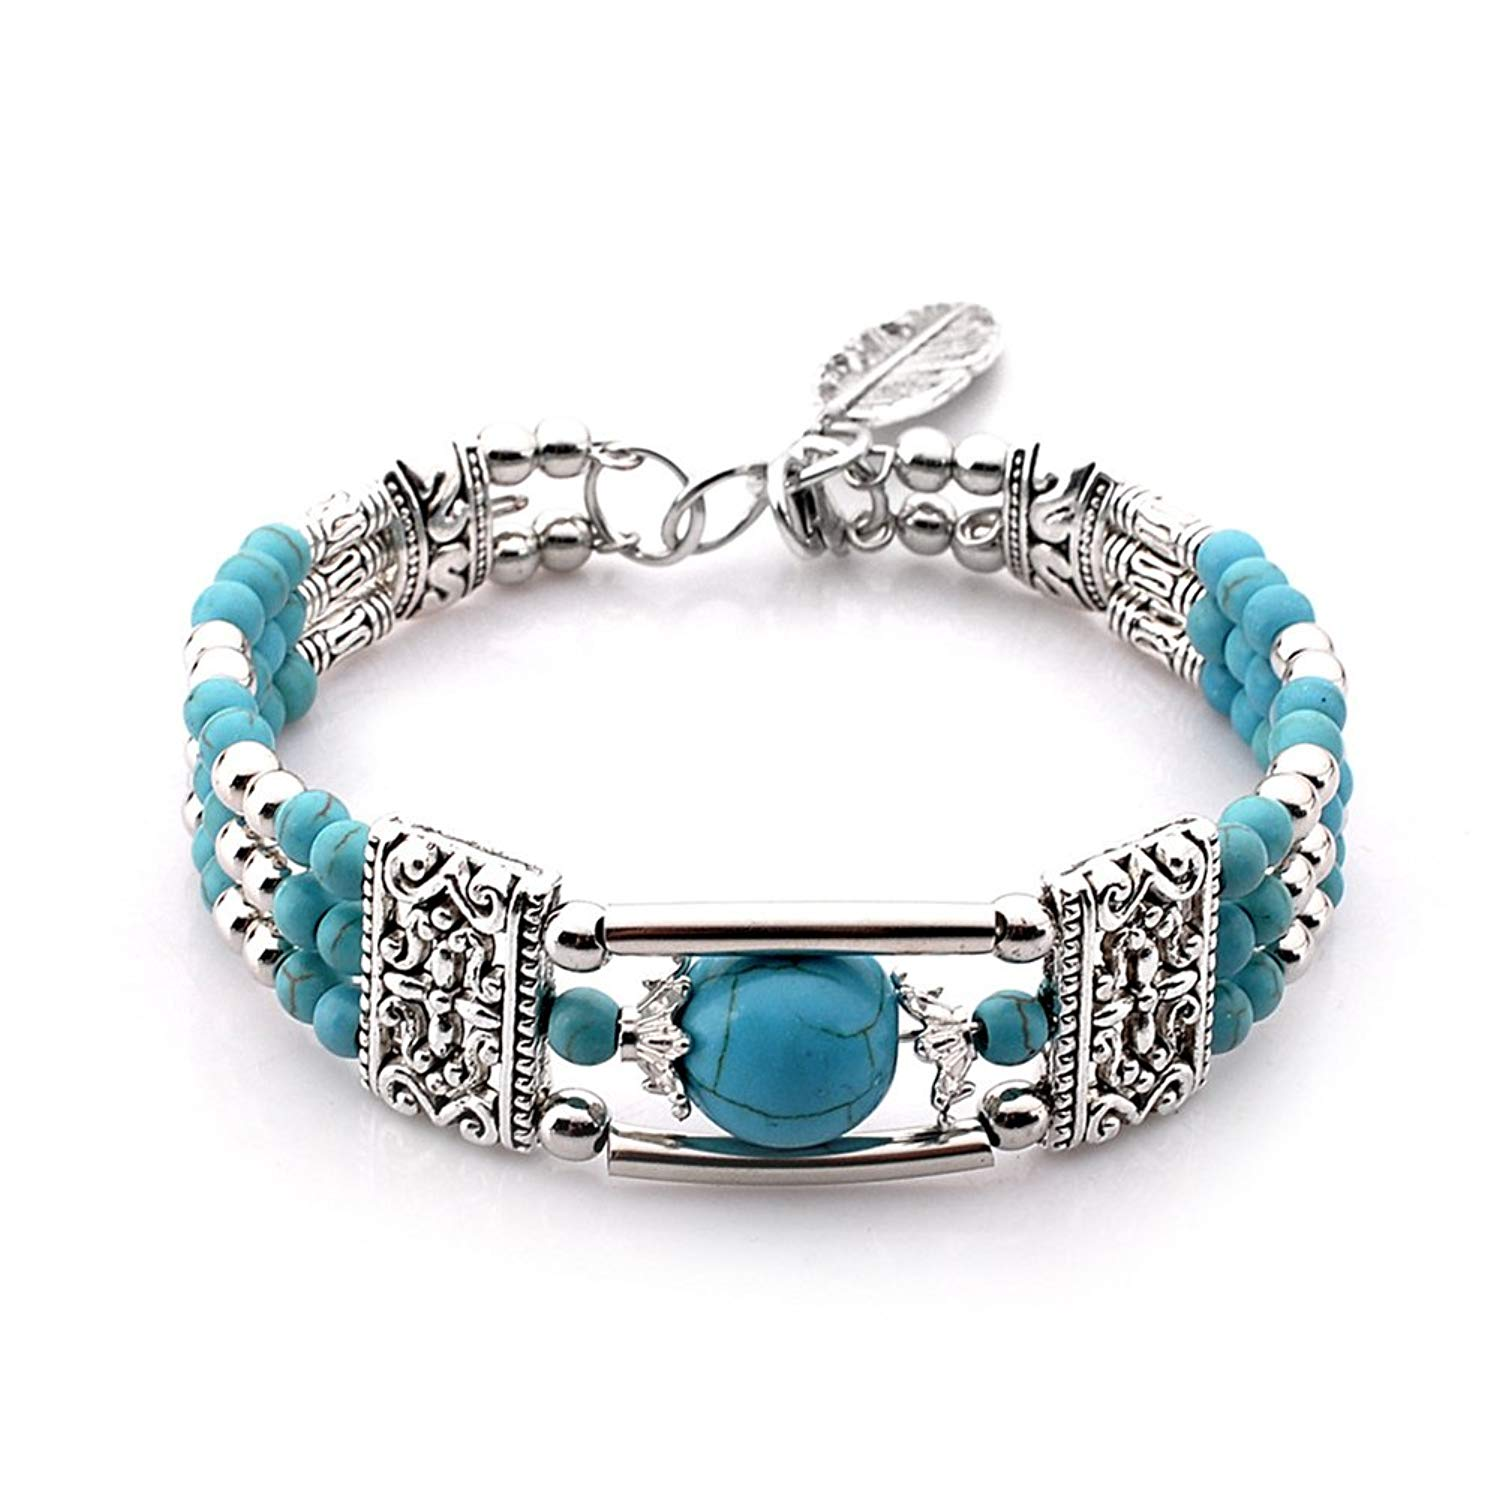 Vintage Turquoise Bead Bracelet with Leaf Charm Bohemia Style Antique Silver Bangle for Women Girls